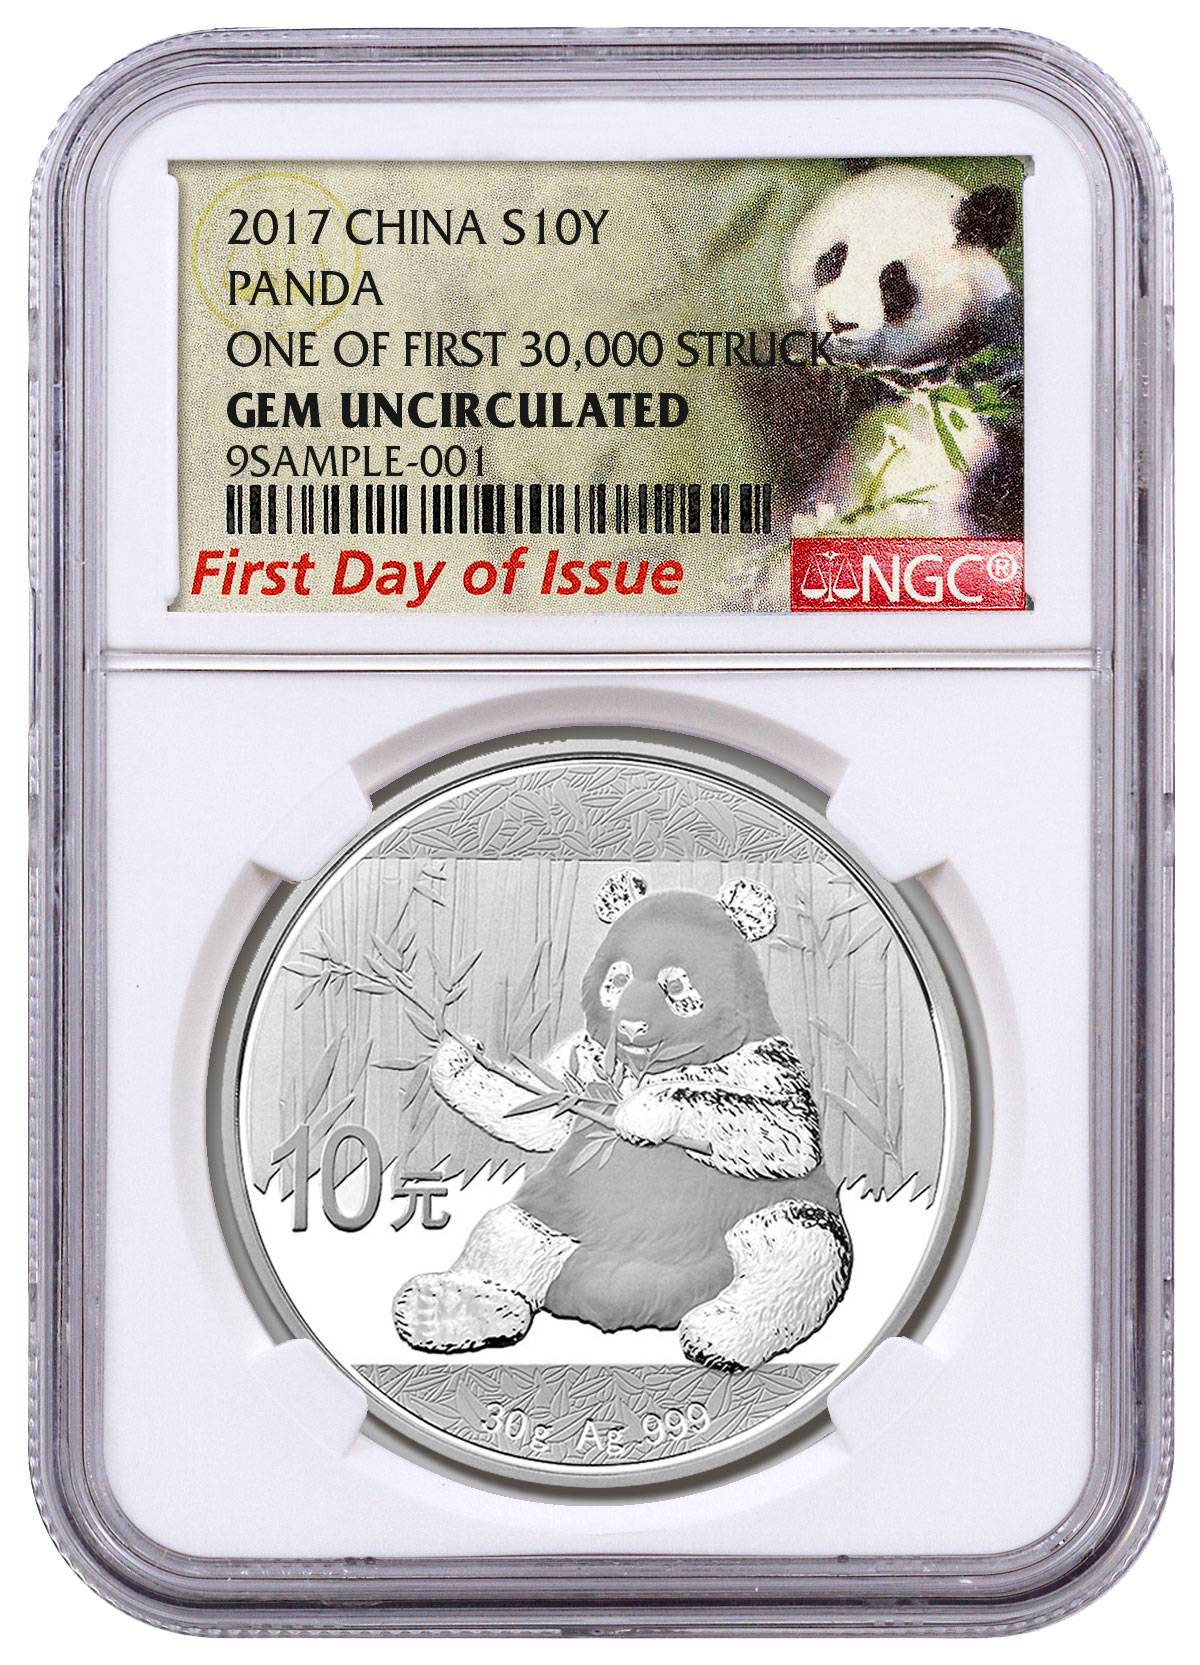 2017 China 30 g Silver Panda ¥10 Coin One of First 30,000 Struck NGC GEM BU FDI (Exclusive Panda Label)